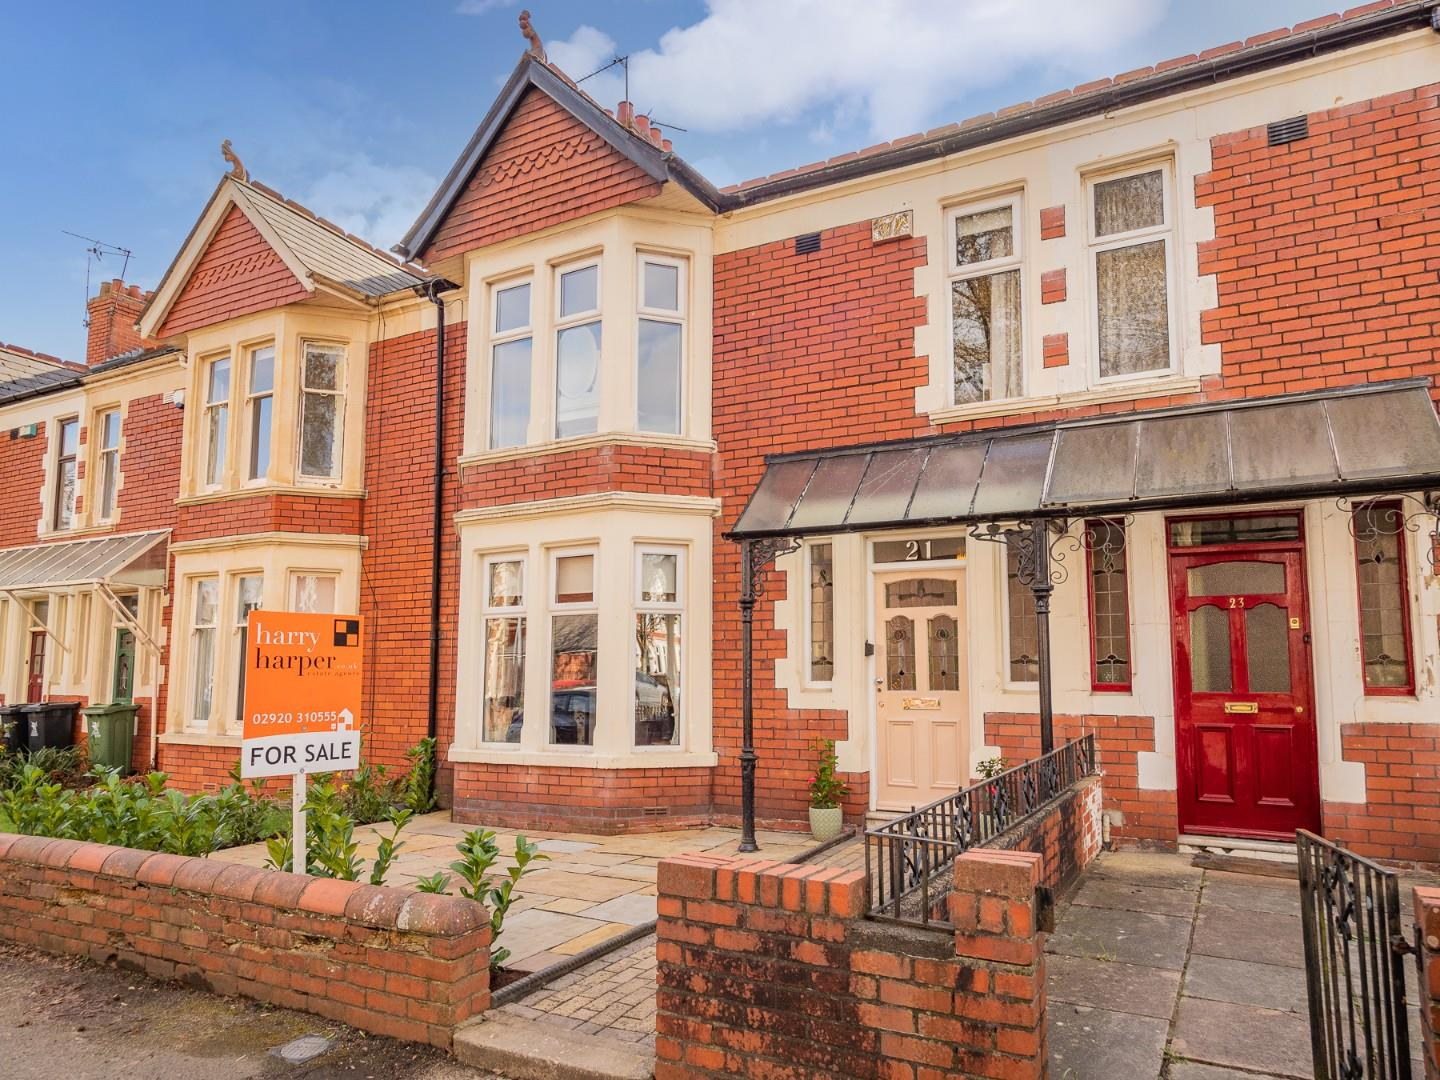 4 bed terraced house for sale in Southminster Road, Cardiff, CF23